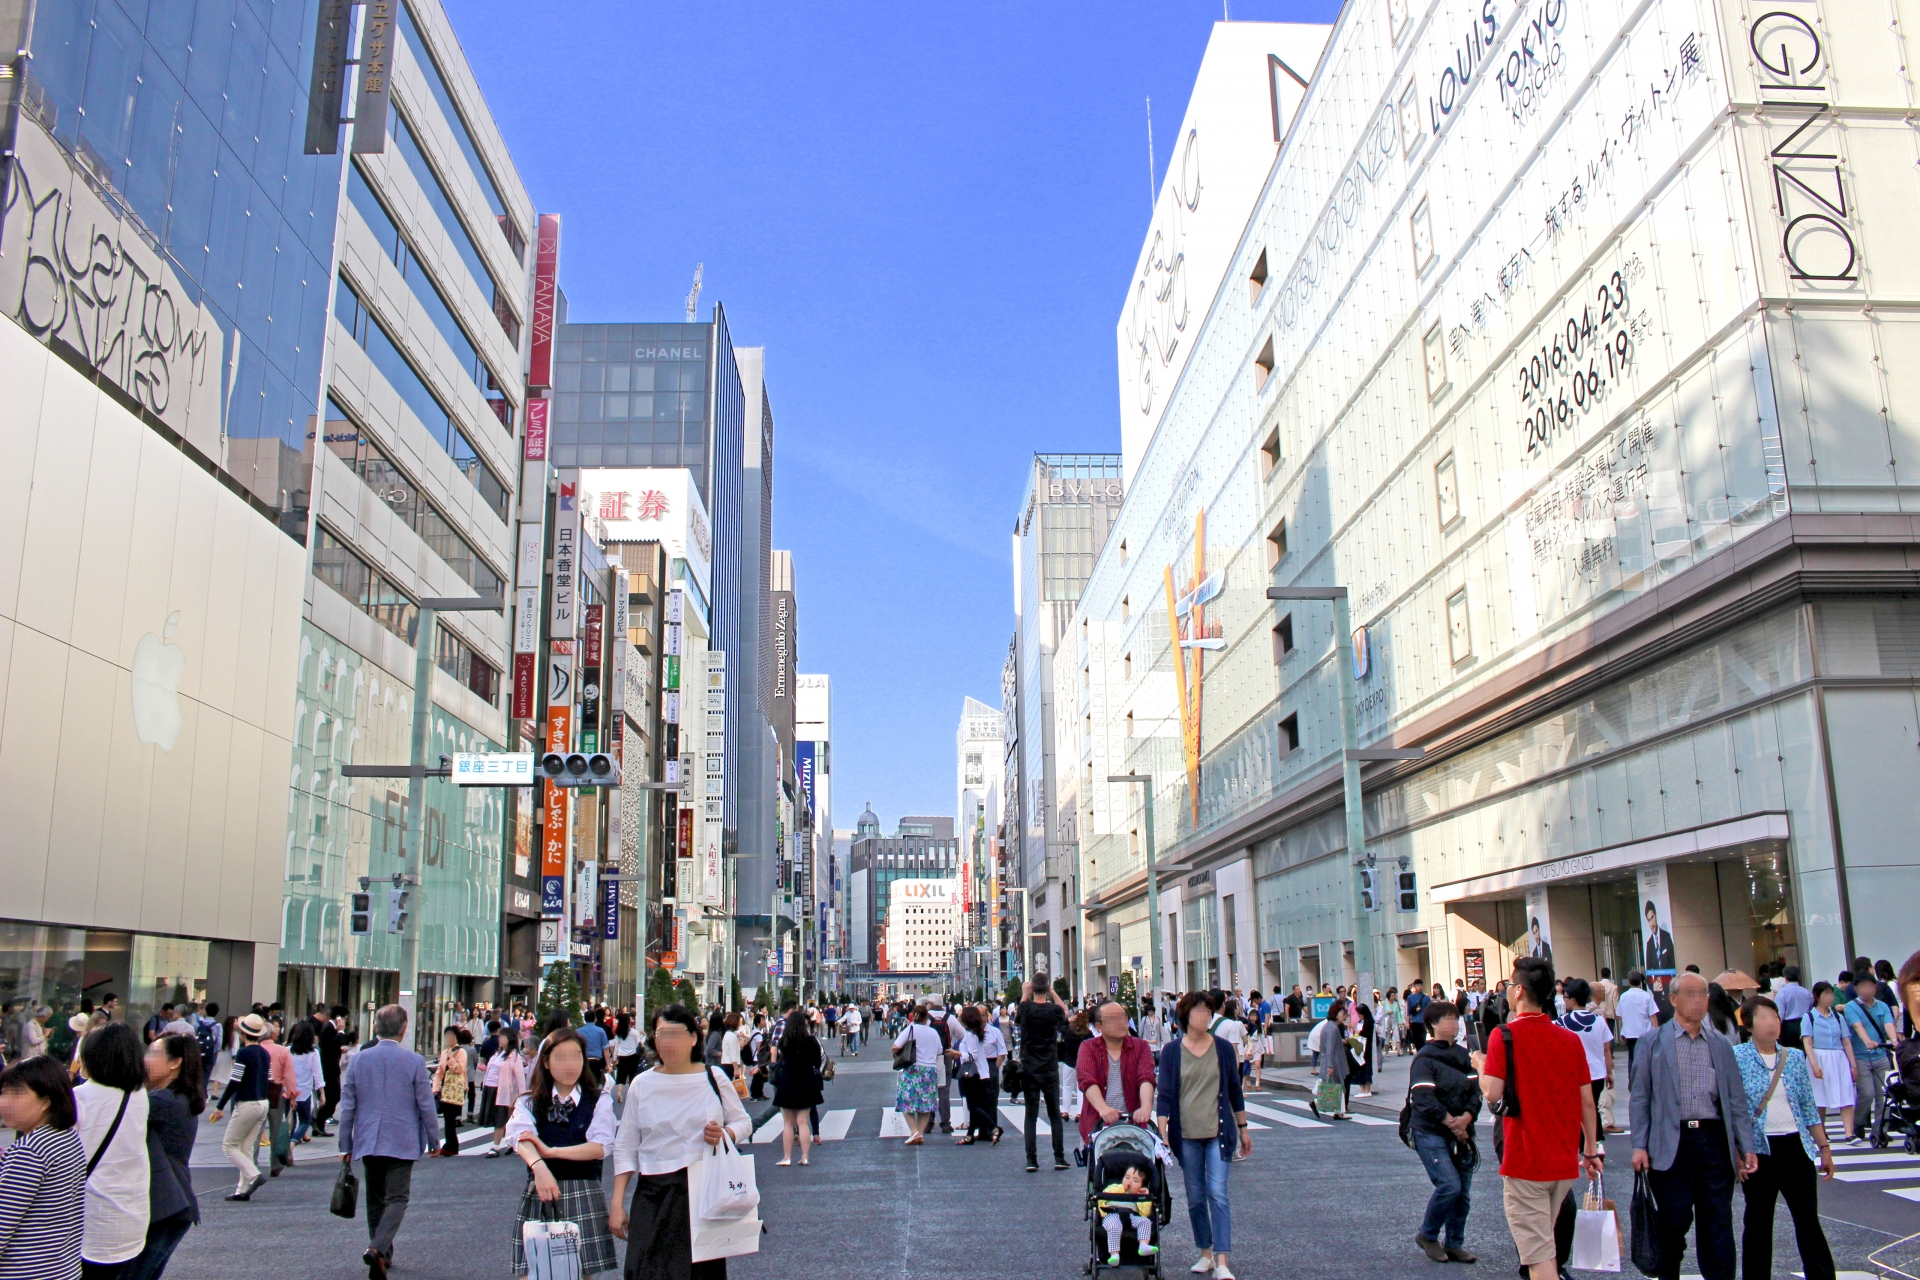 http://journeyjapan.org/gt/images/Ginza%201.jpg